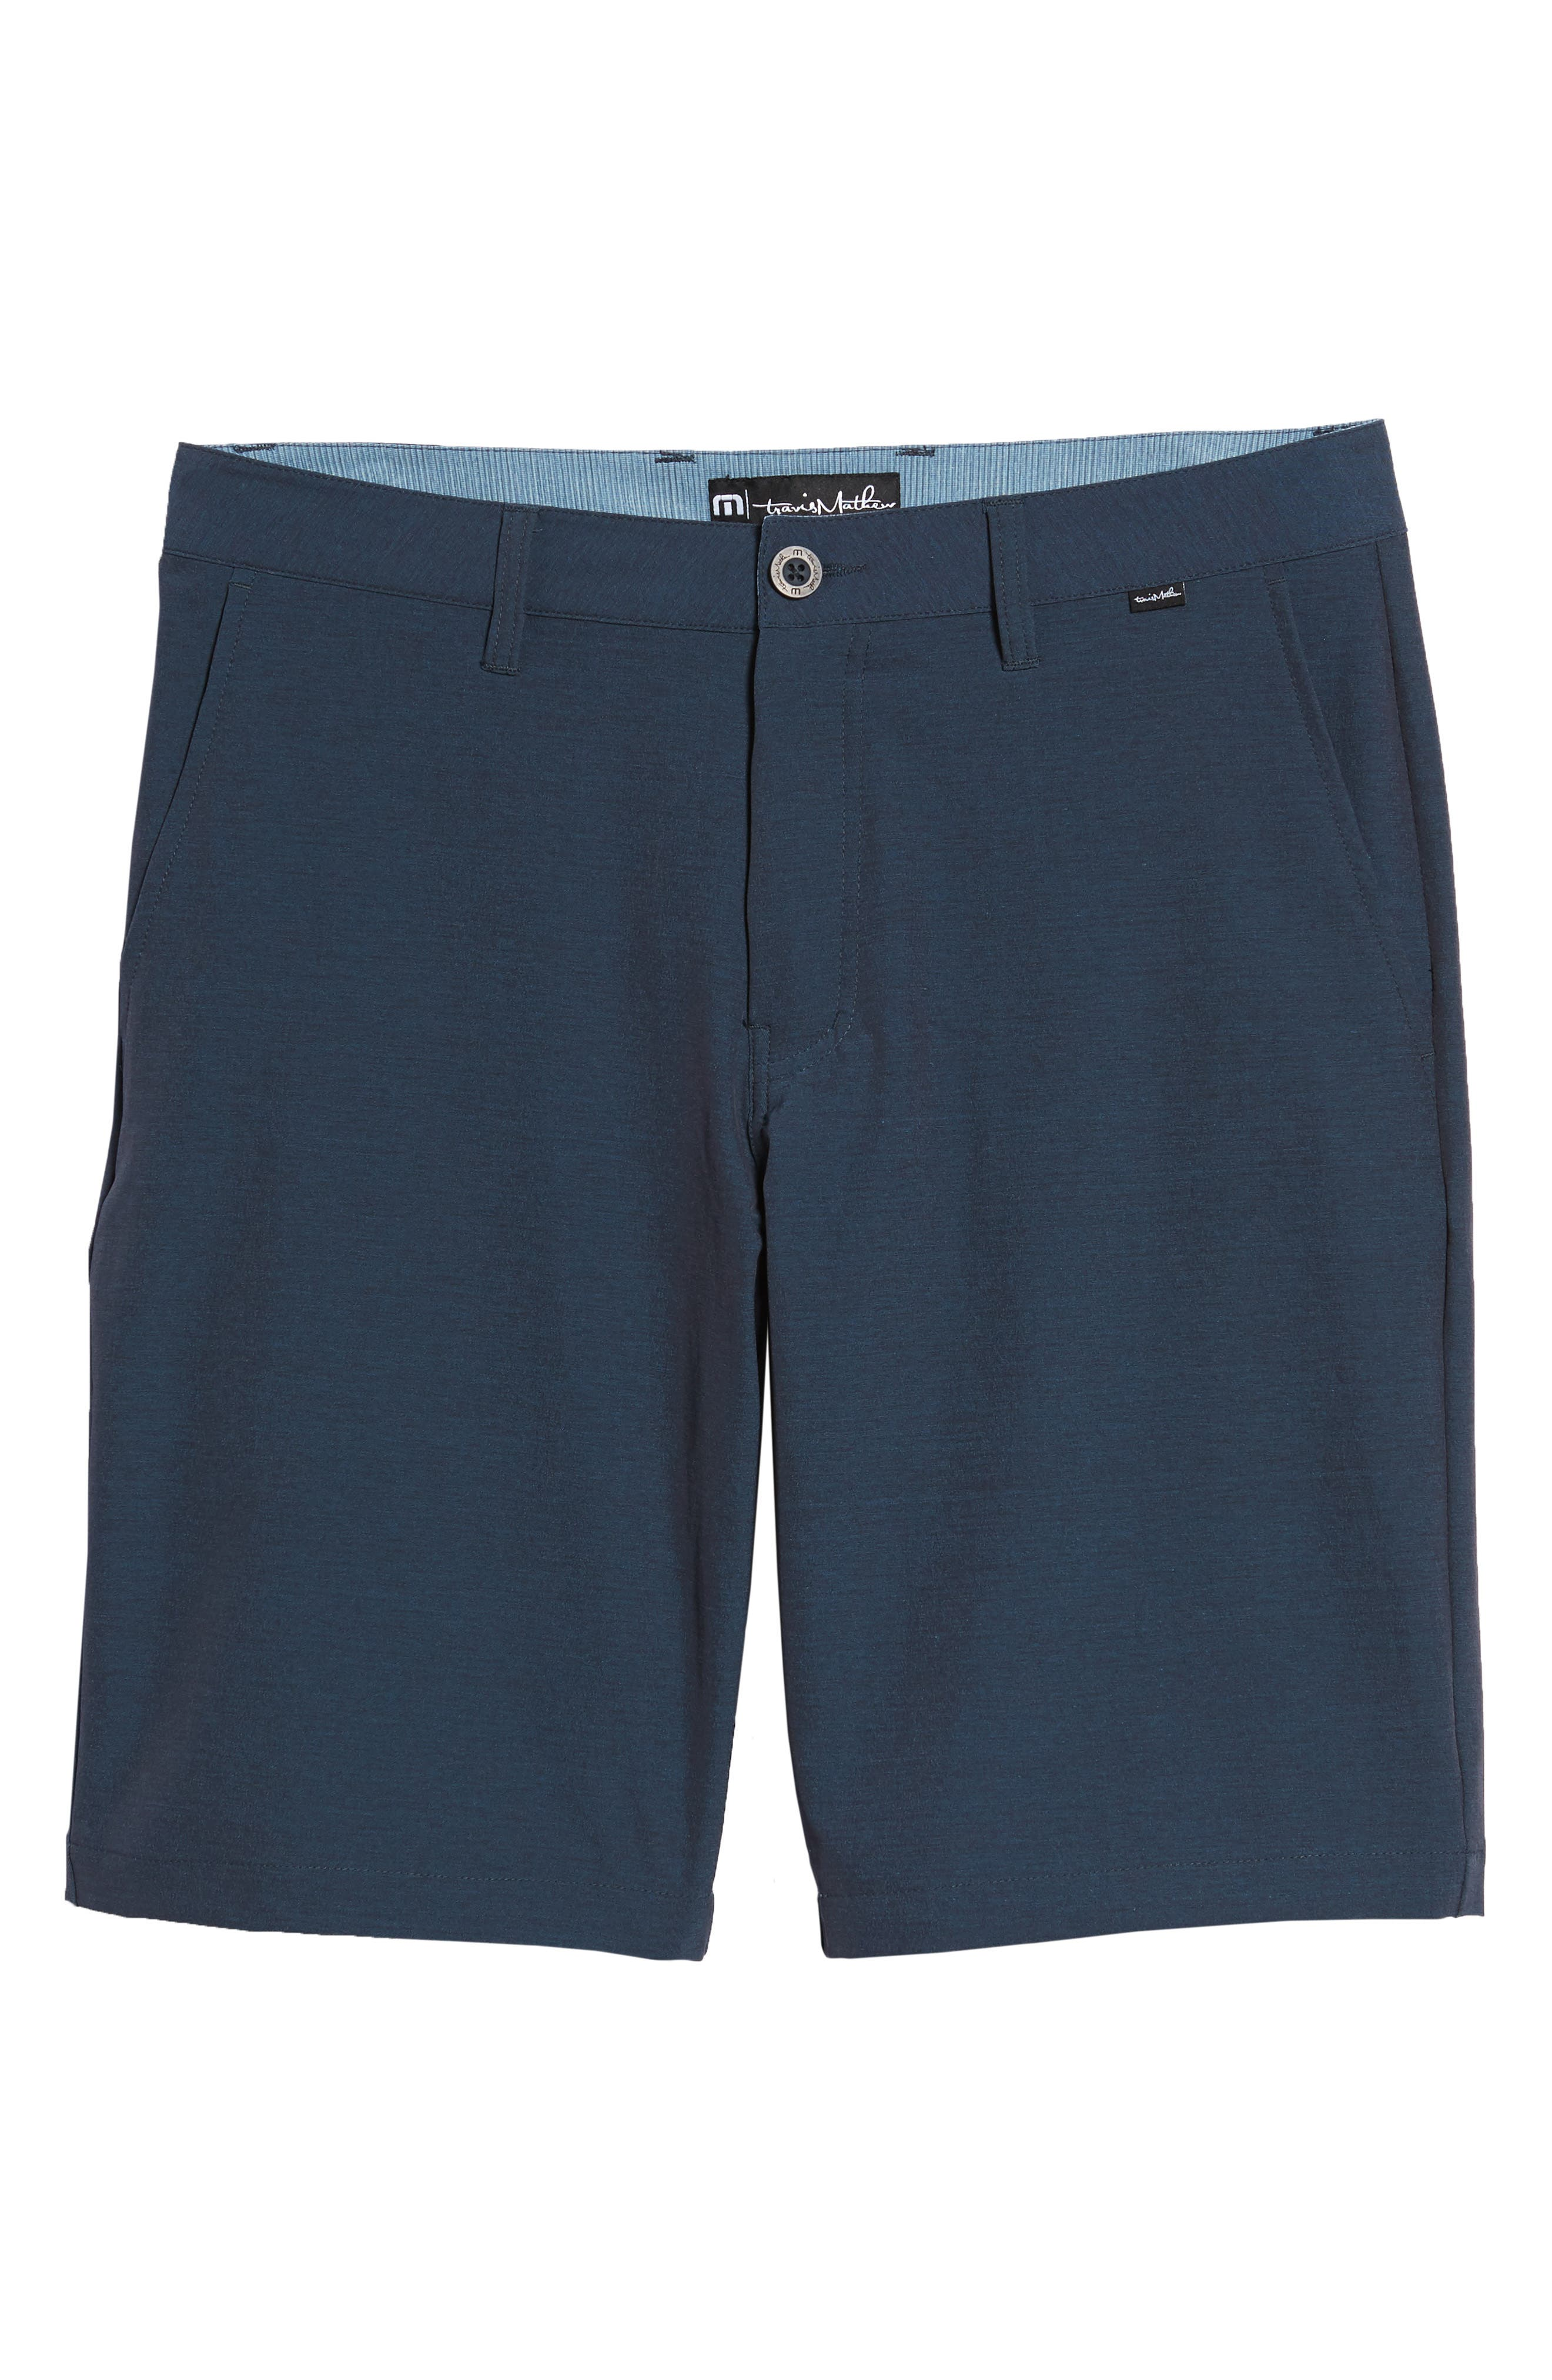 Pancho Shorts,                             Alternate thumbnail 6, color,                             Blue Nights/ French Blue